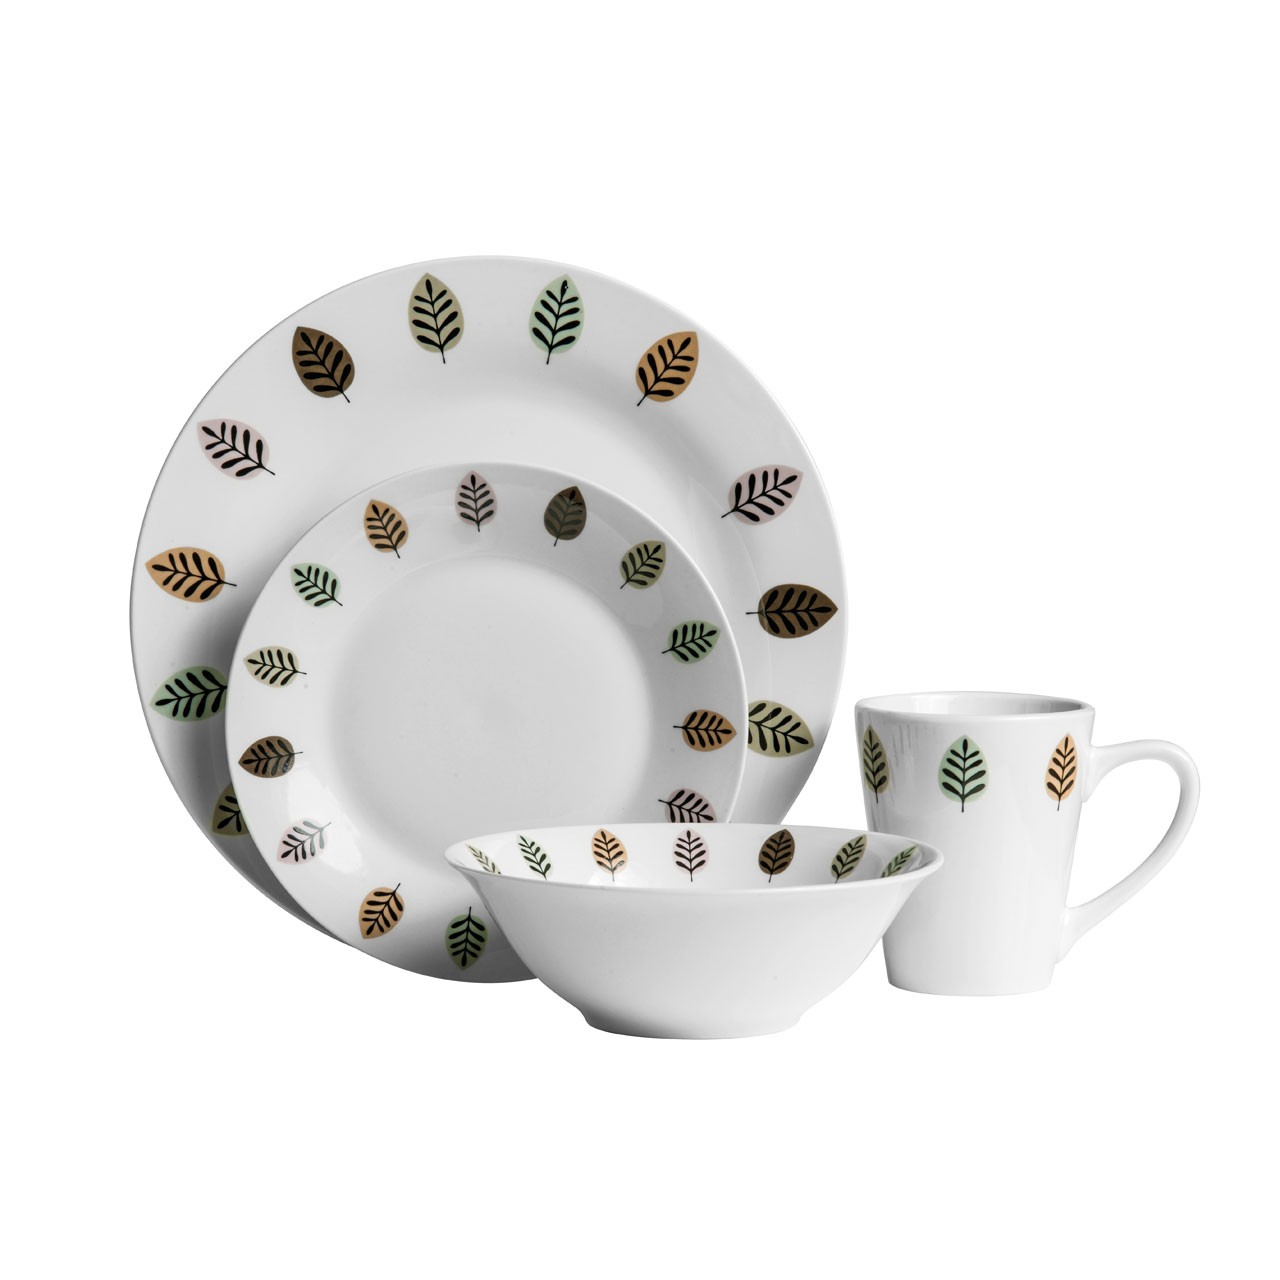 Prime Furnishing 16pc Elm Dinner Set, Porcelain